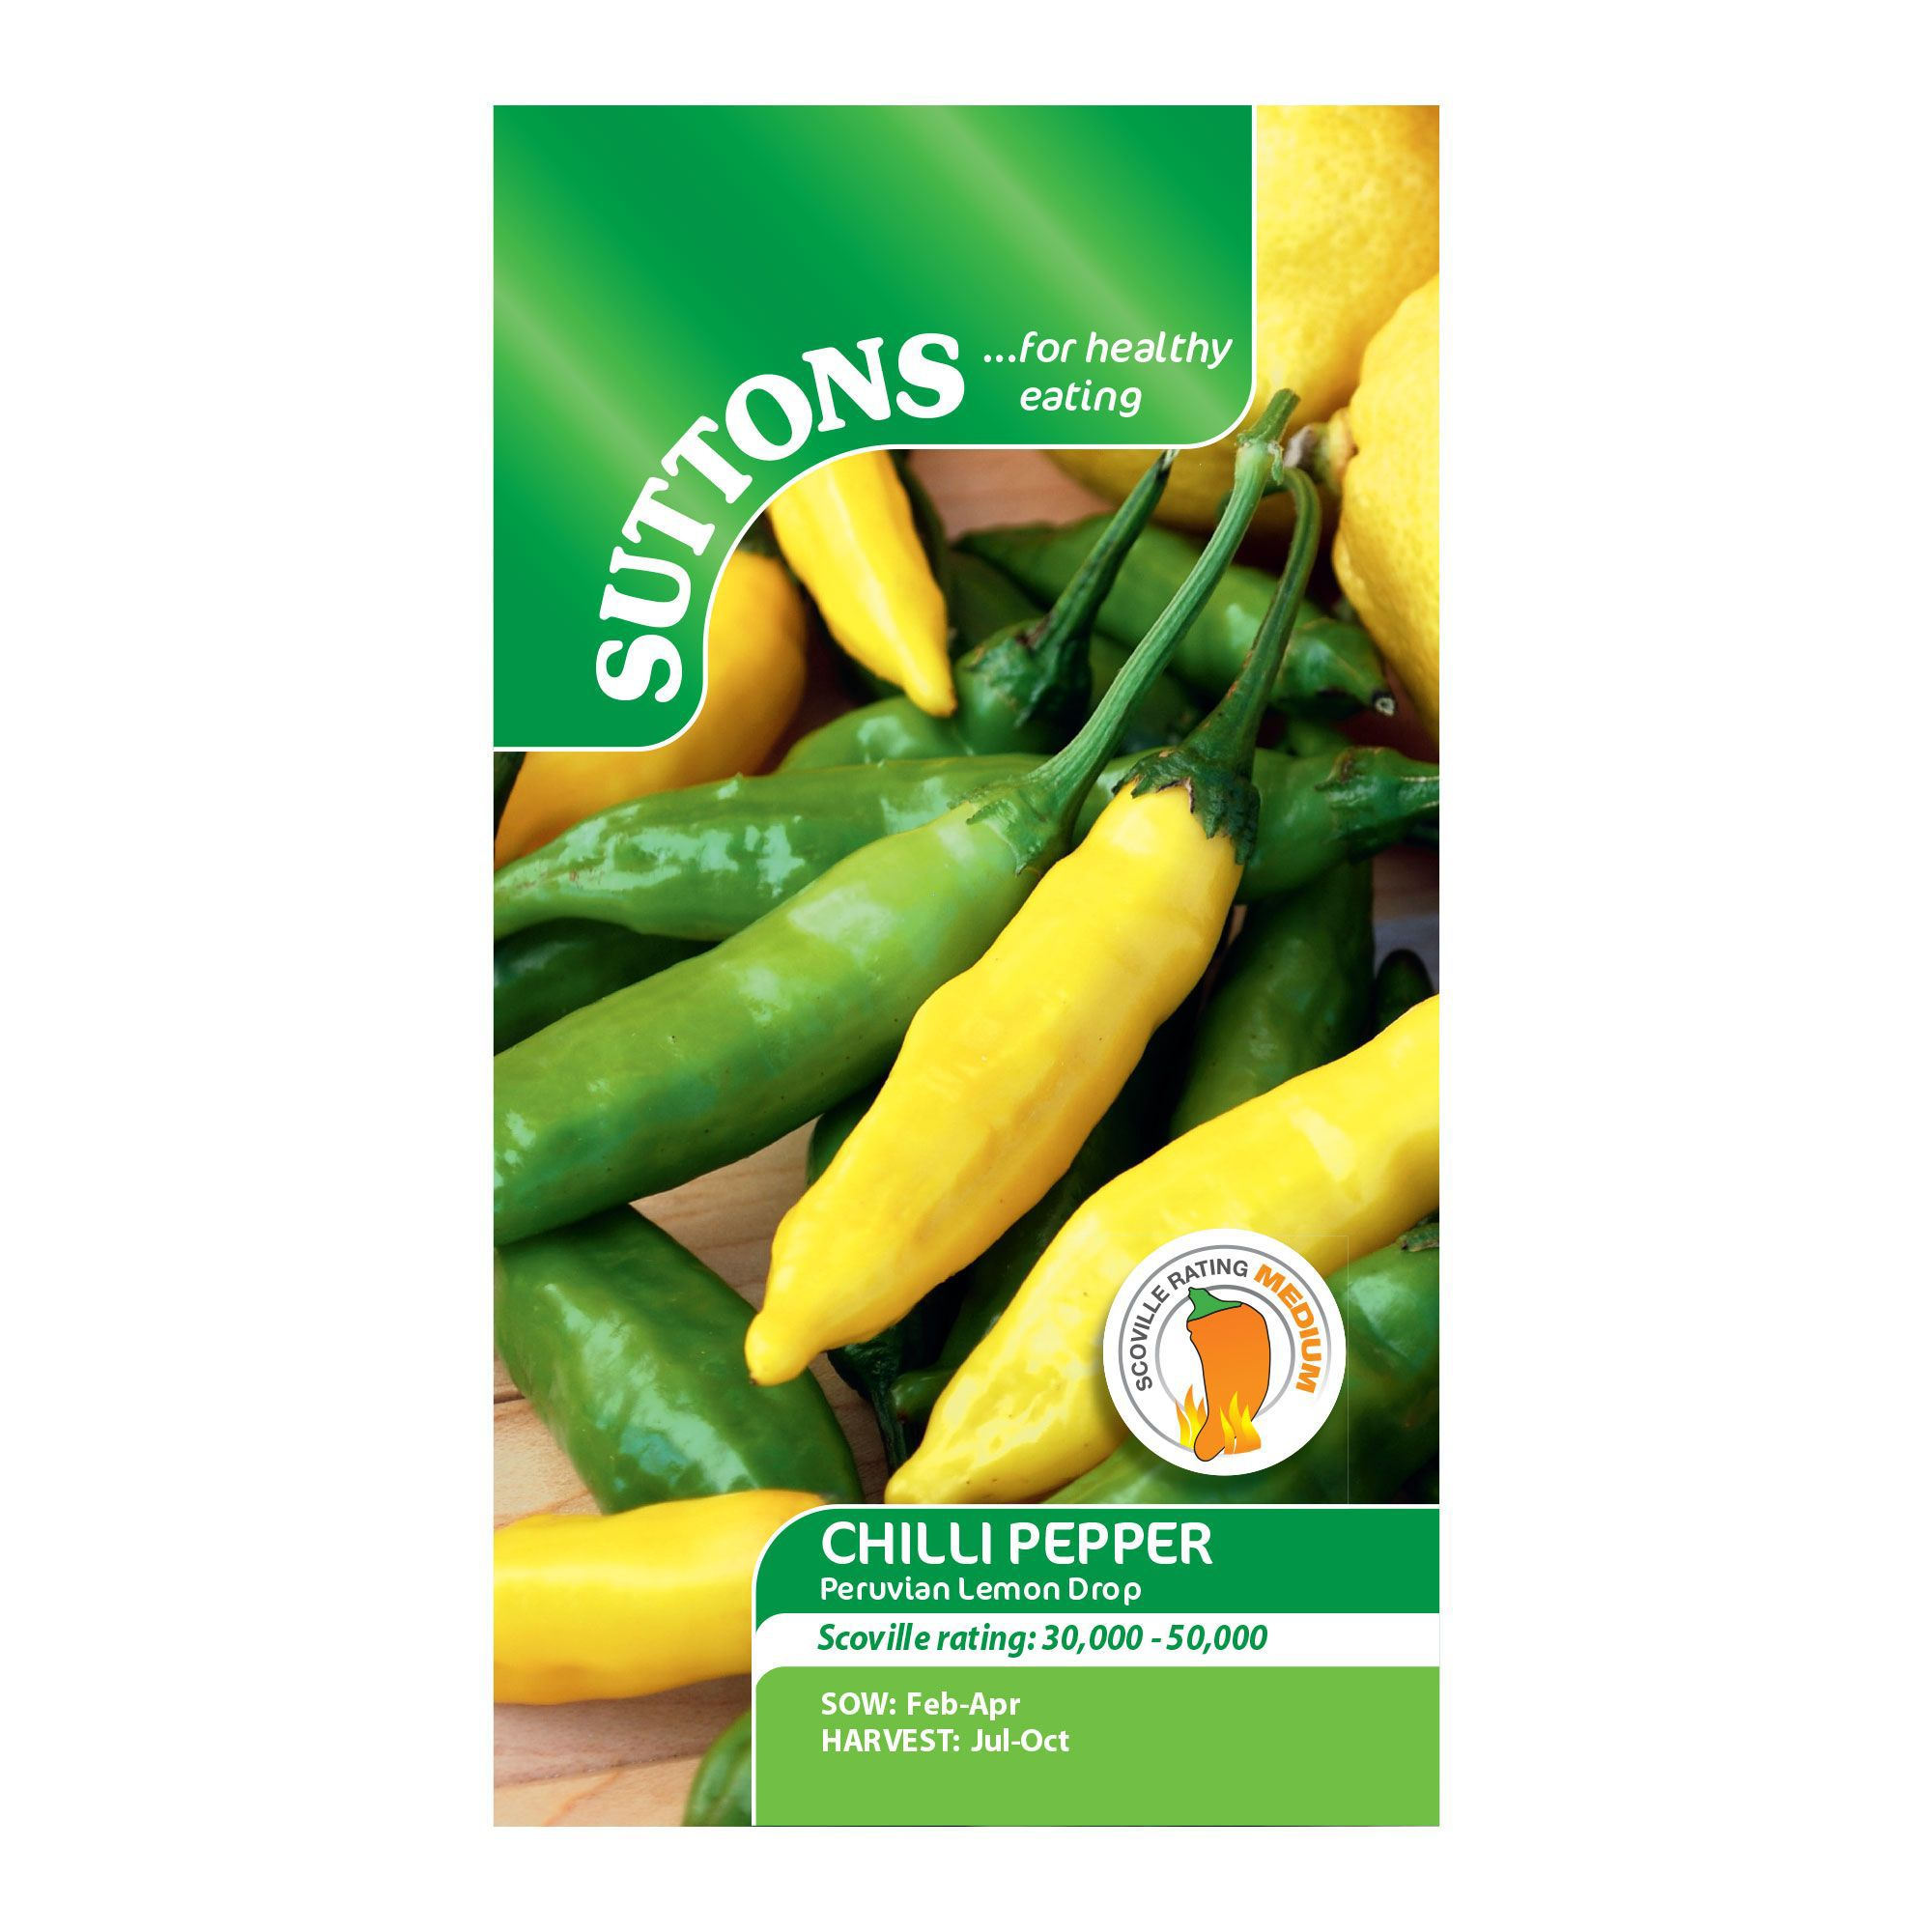 Suttons Chilli pepper Seeds, Peruvian lemon drop